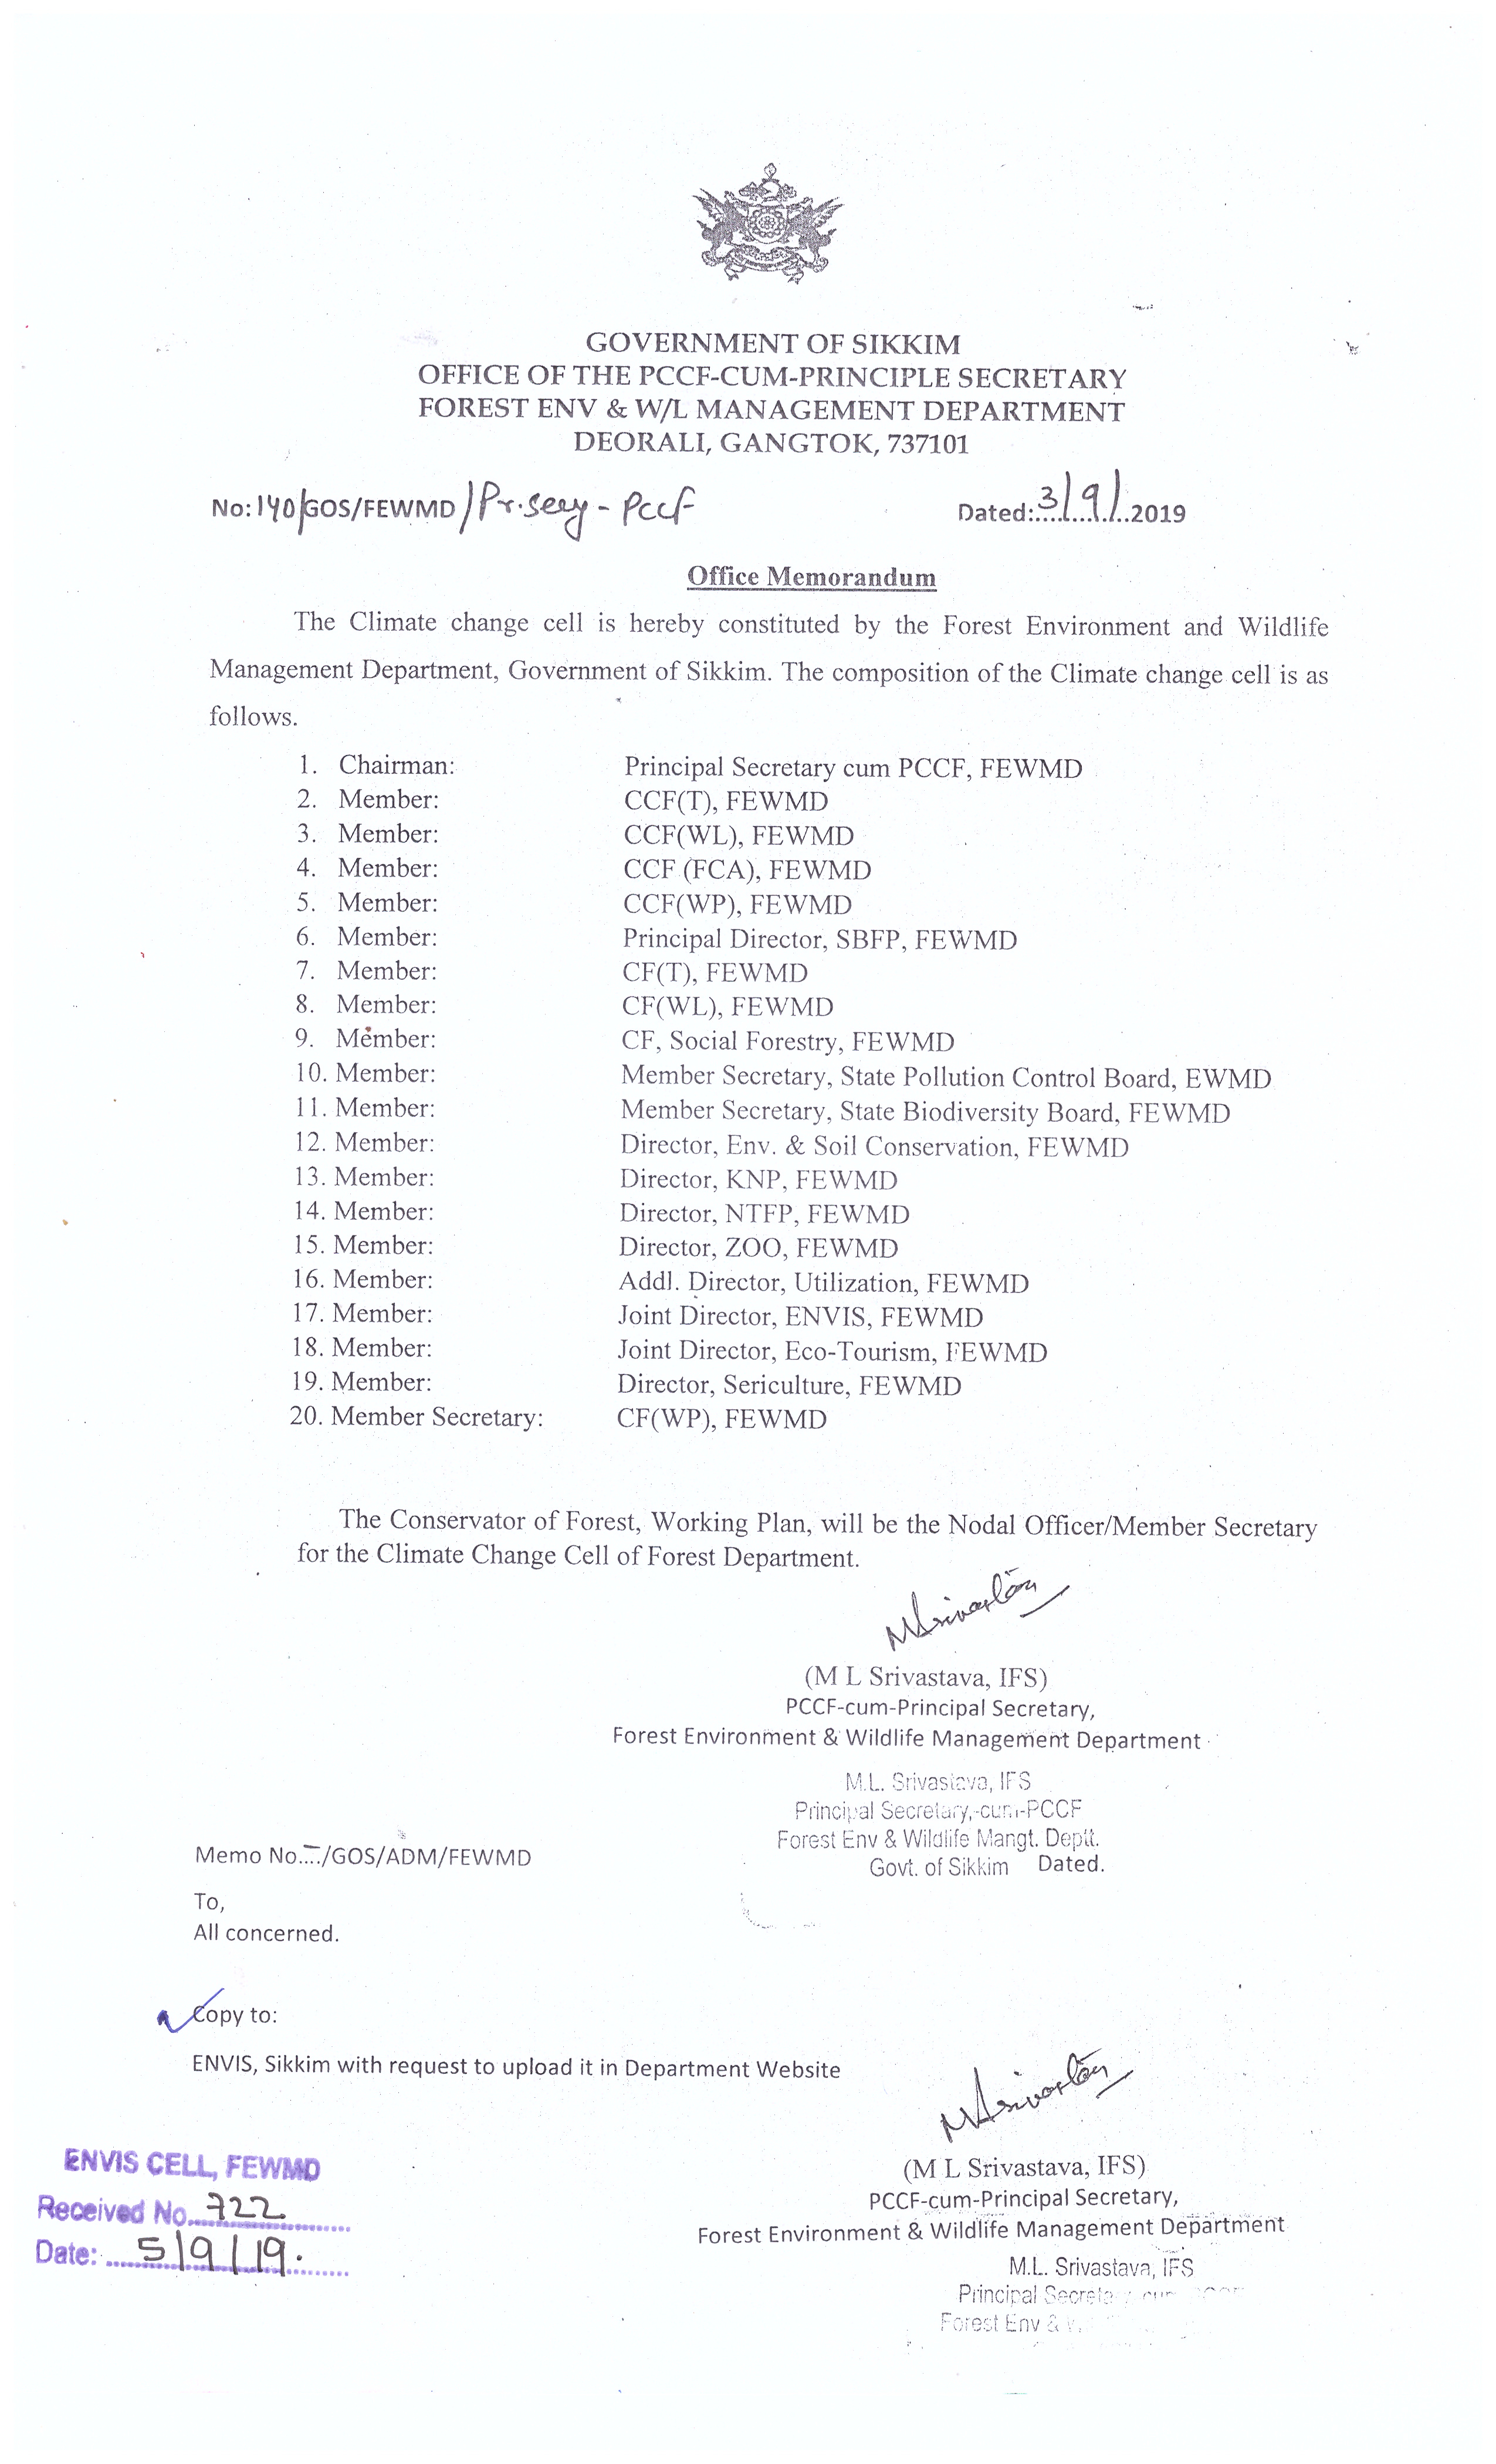 Forests, Environment & Wildlife Management Department ...